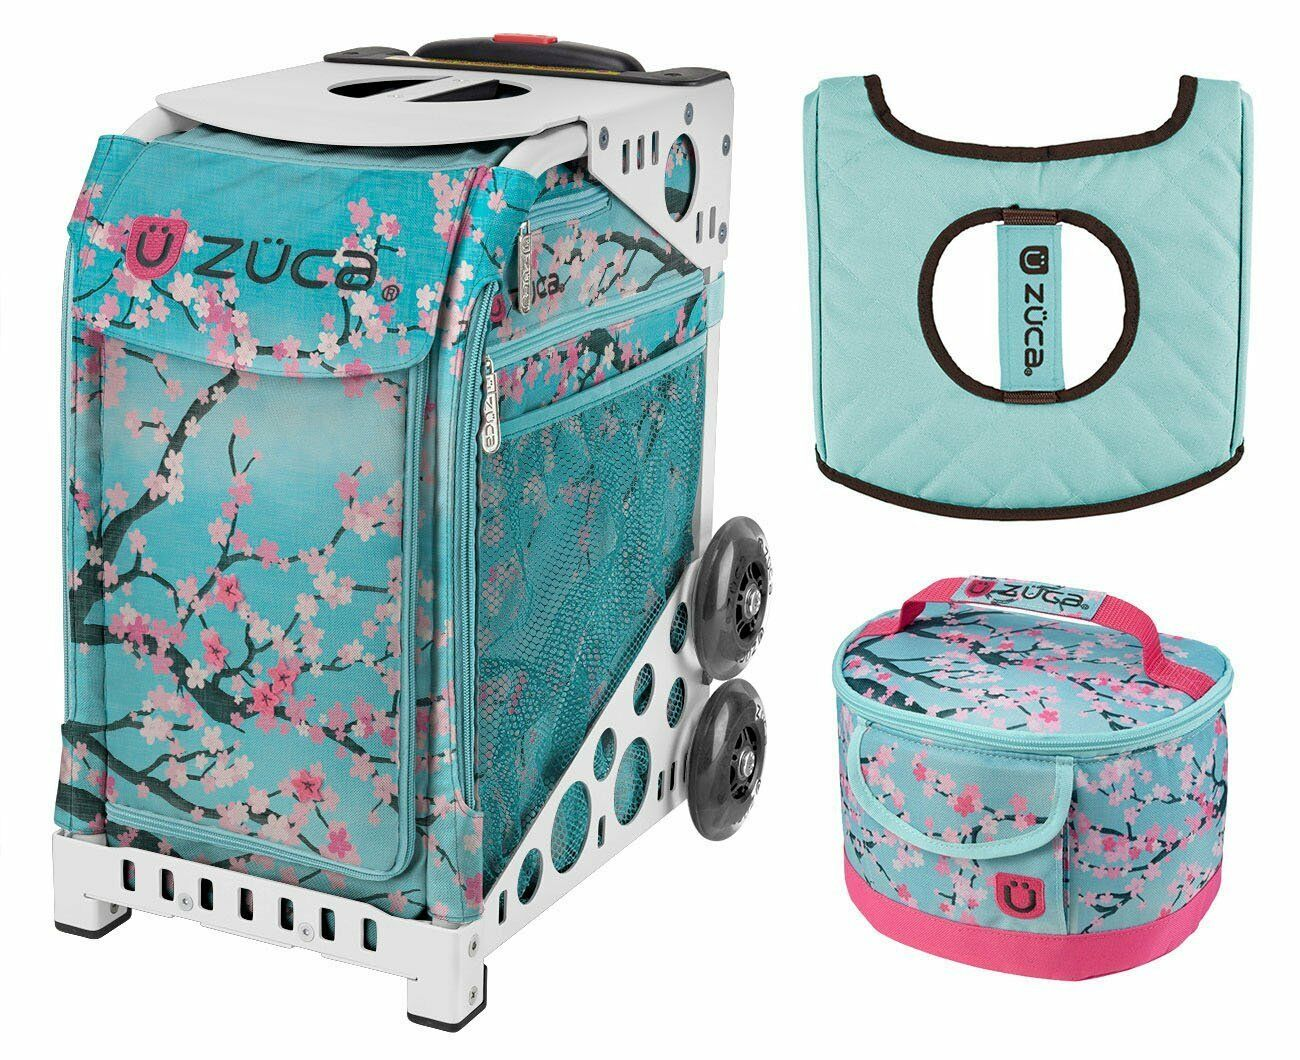 Zuca Sport  Bag - Hanami with GIFT Lunchbox and Seat Cover (White Frame)  100% authentic